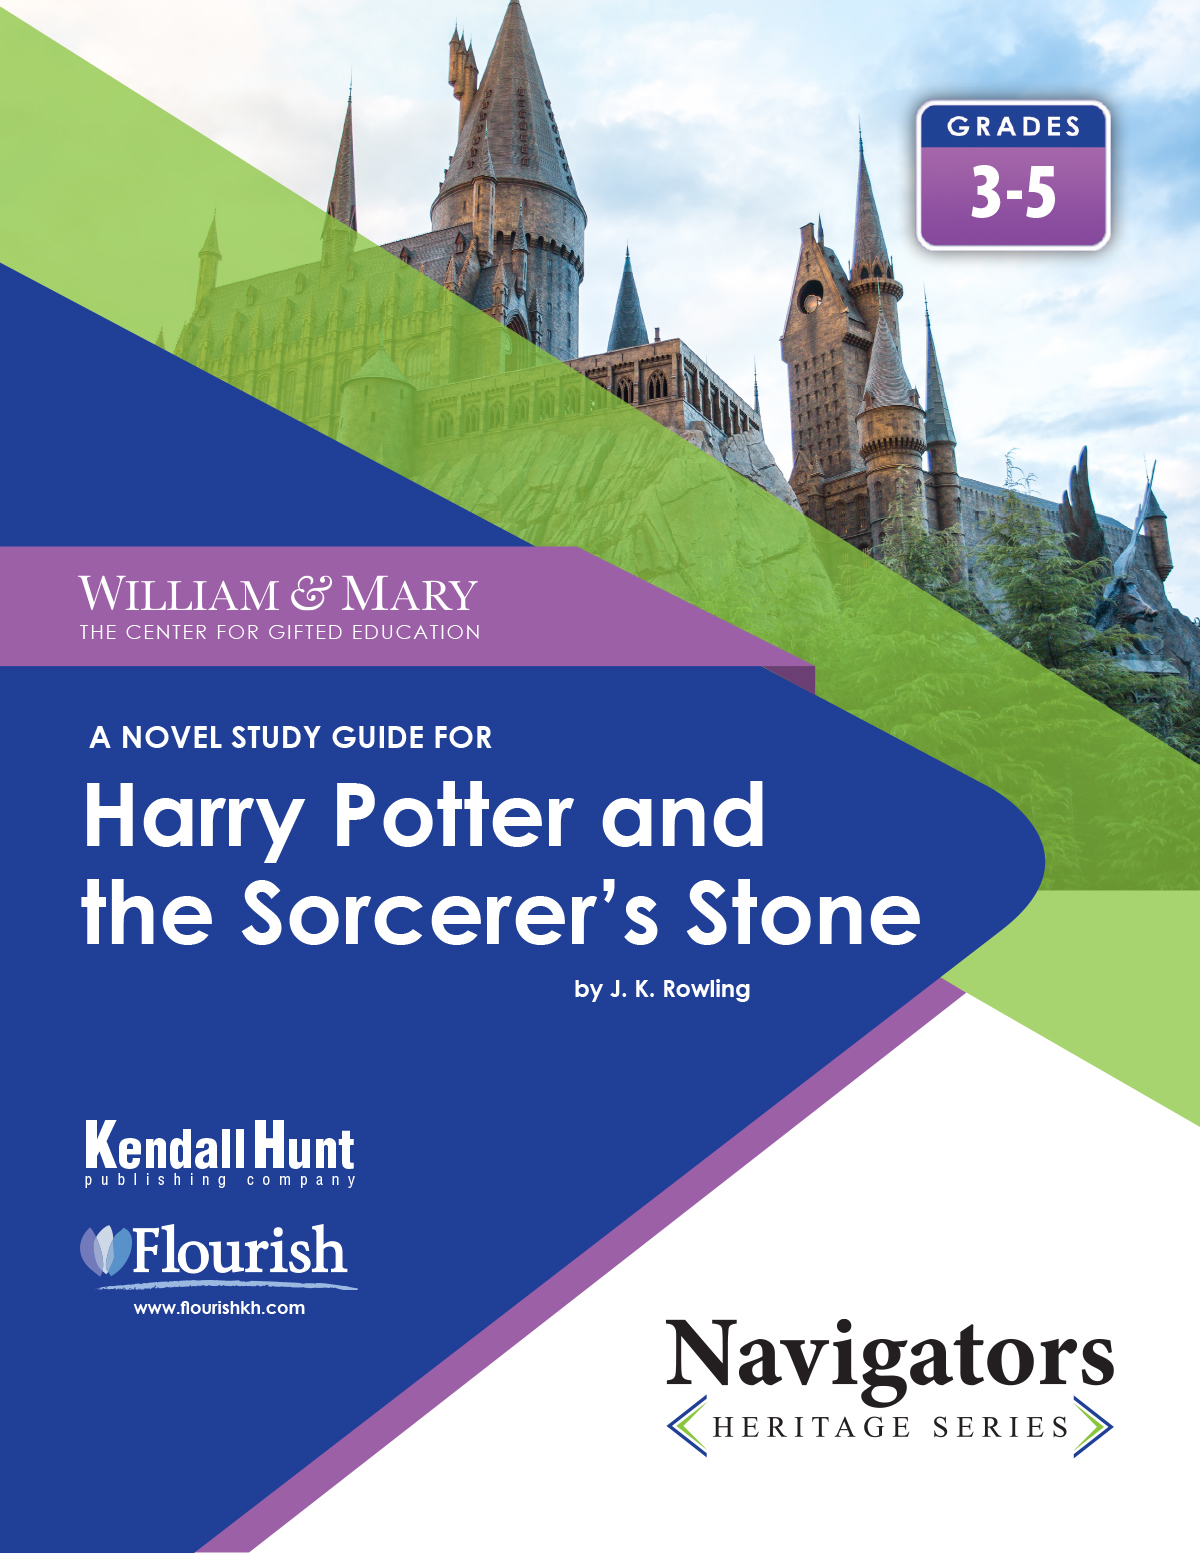 William & Mary Navigator Harry Potter and the Sorcerer's Stone